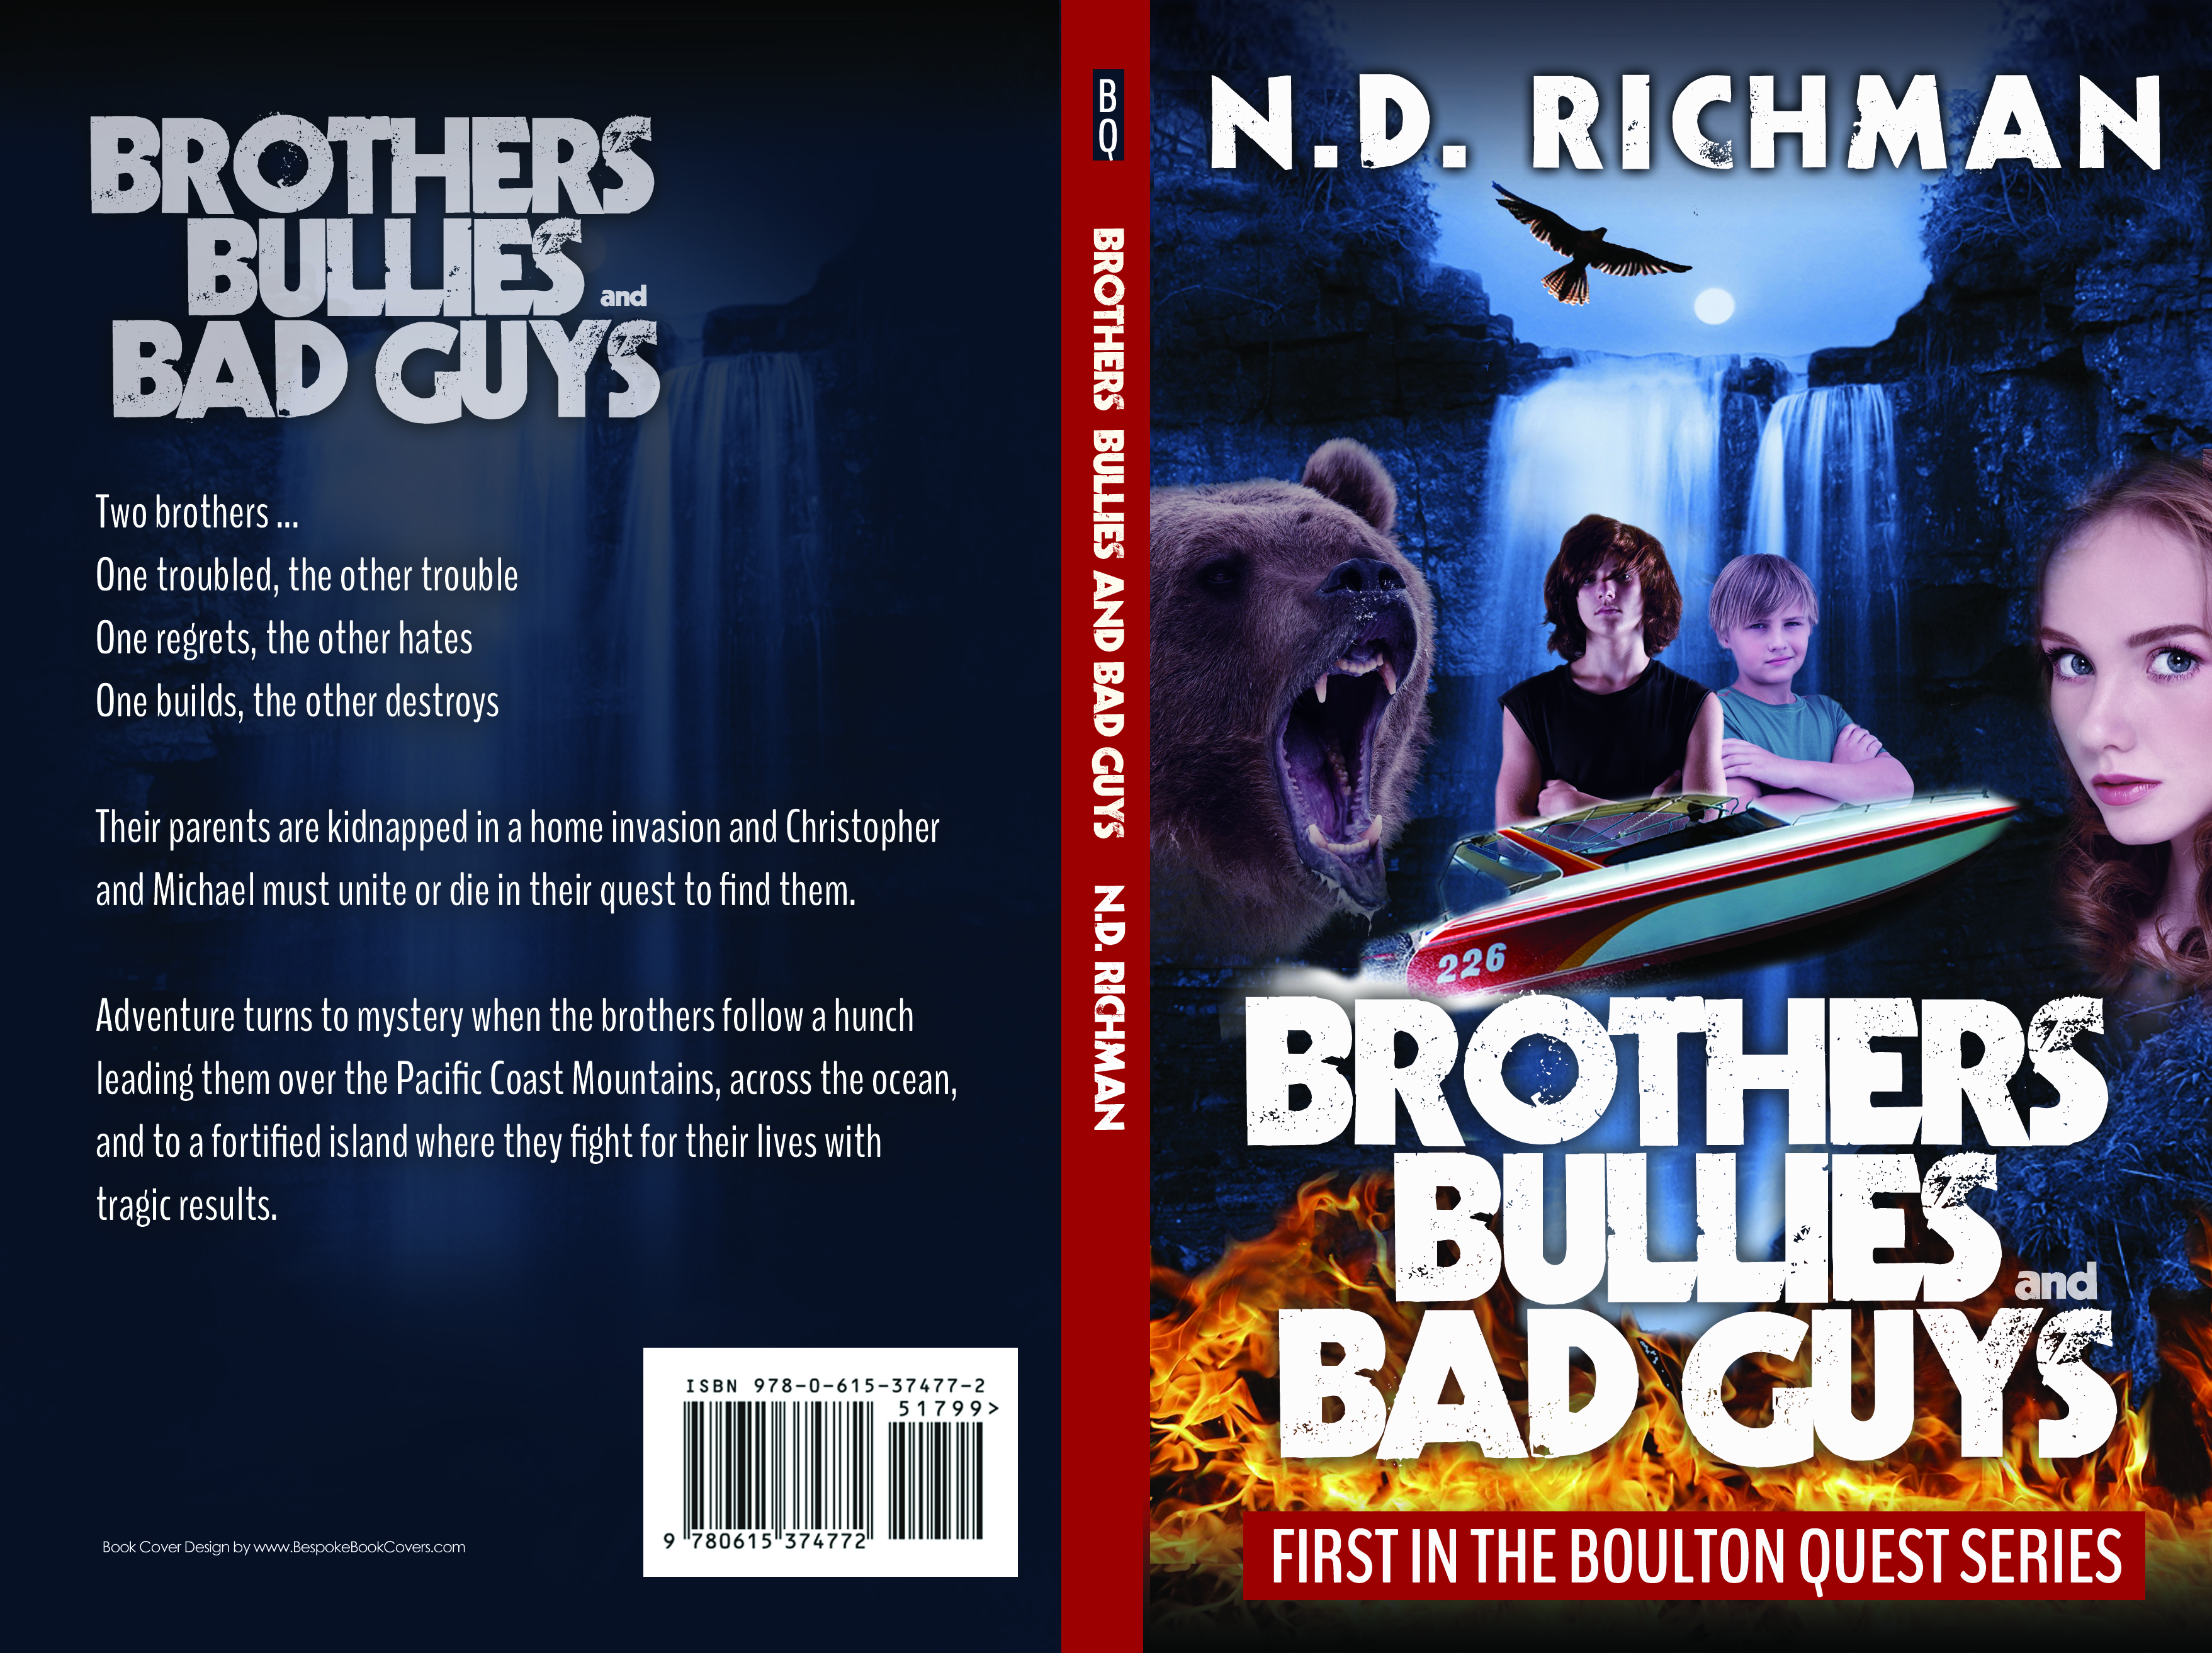 brothers, bullies and bad guys book cover